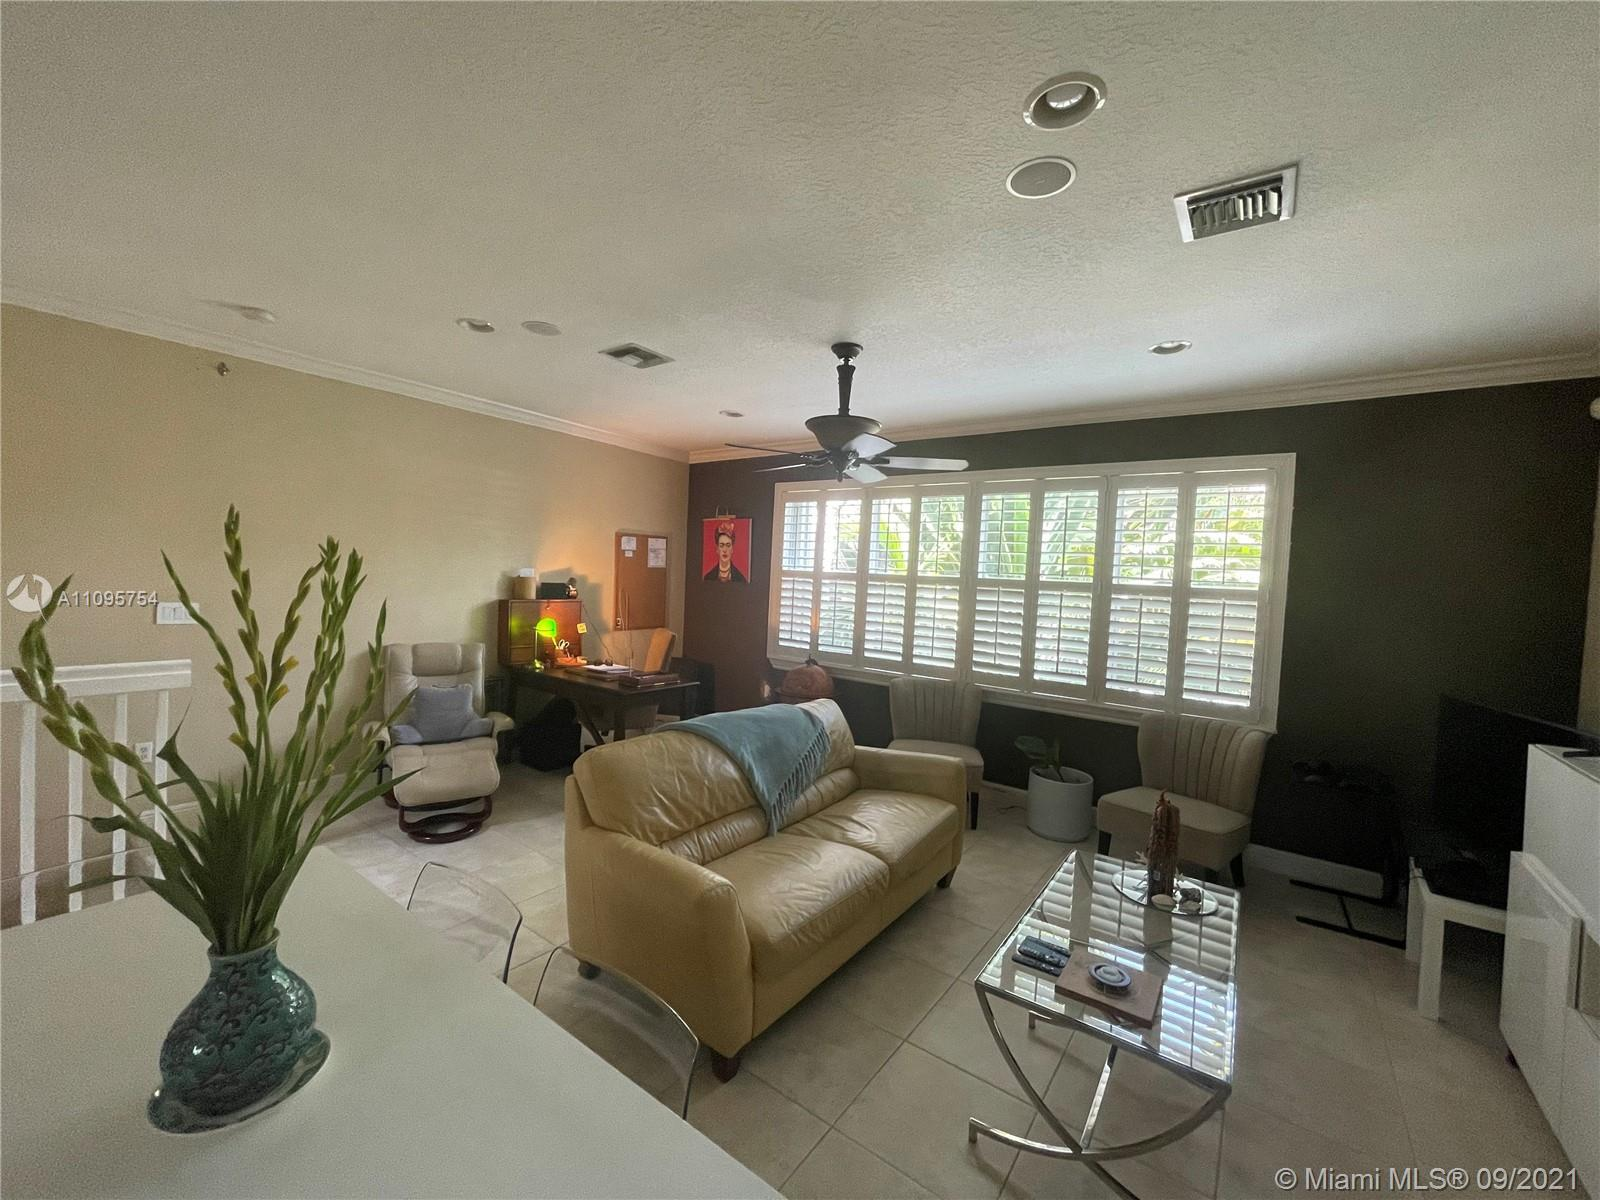 Rarely available 3 bedroom 3 full bath townhouse in Tarpon River. Large tile floors thorough, crown